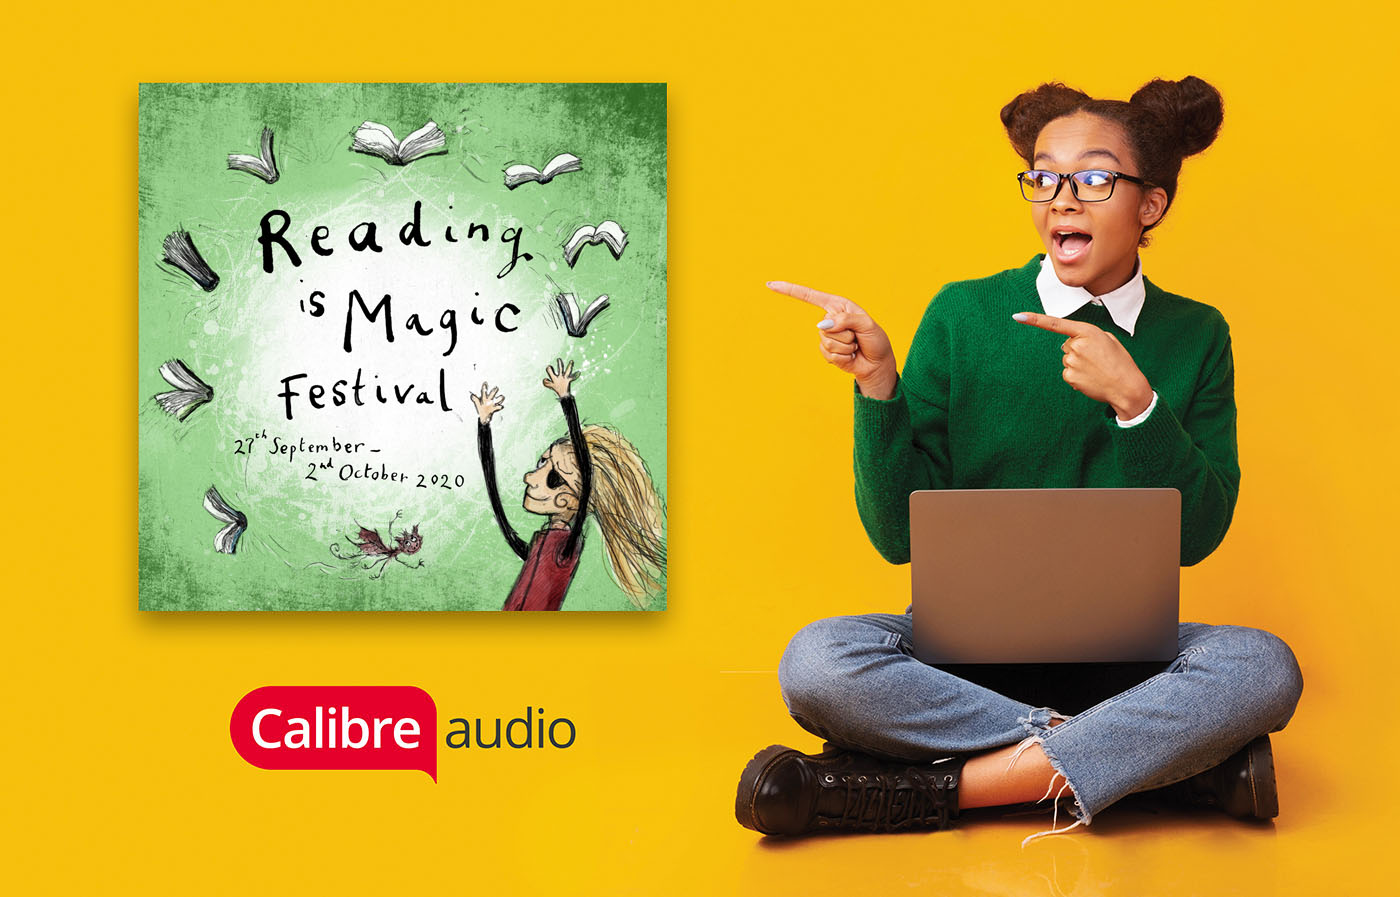 Image showing girl pointing at Reading is Magic Festival sign